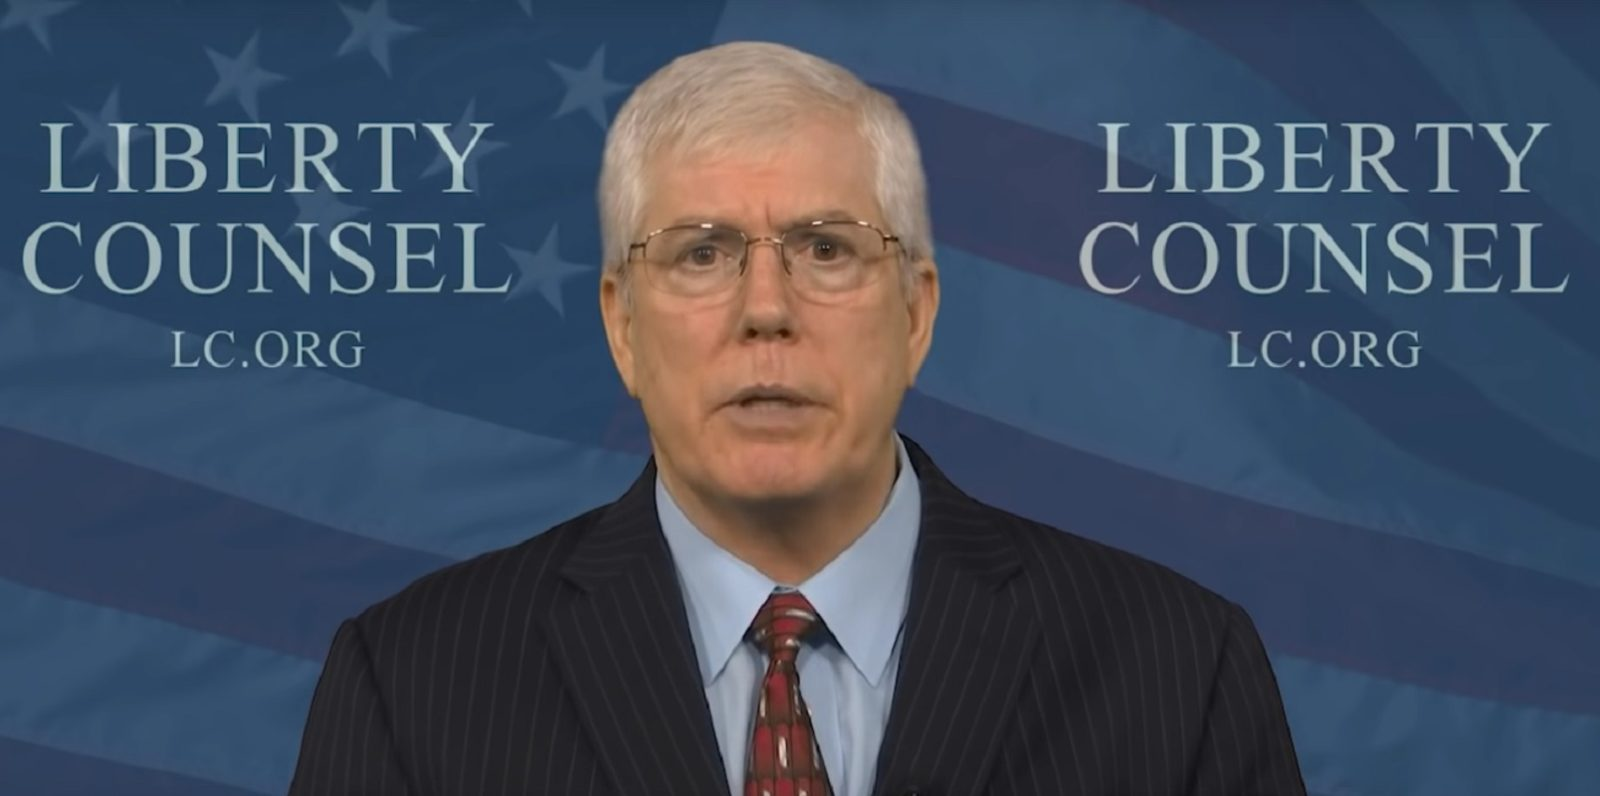 Mat Staver of Liberty Counsel is seeking to challenge a ban on gay cure therapy